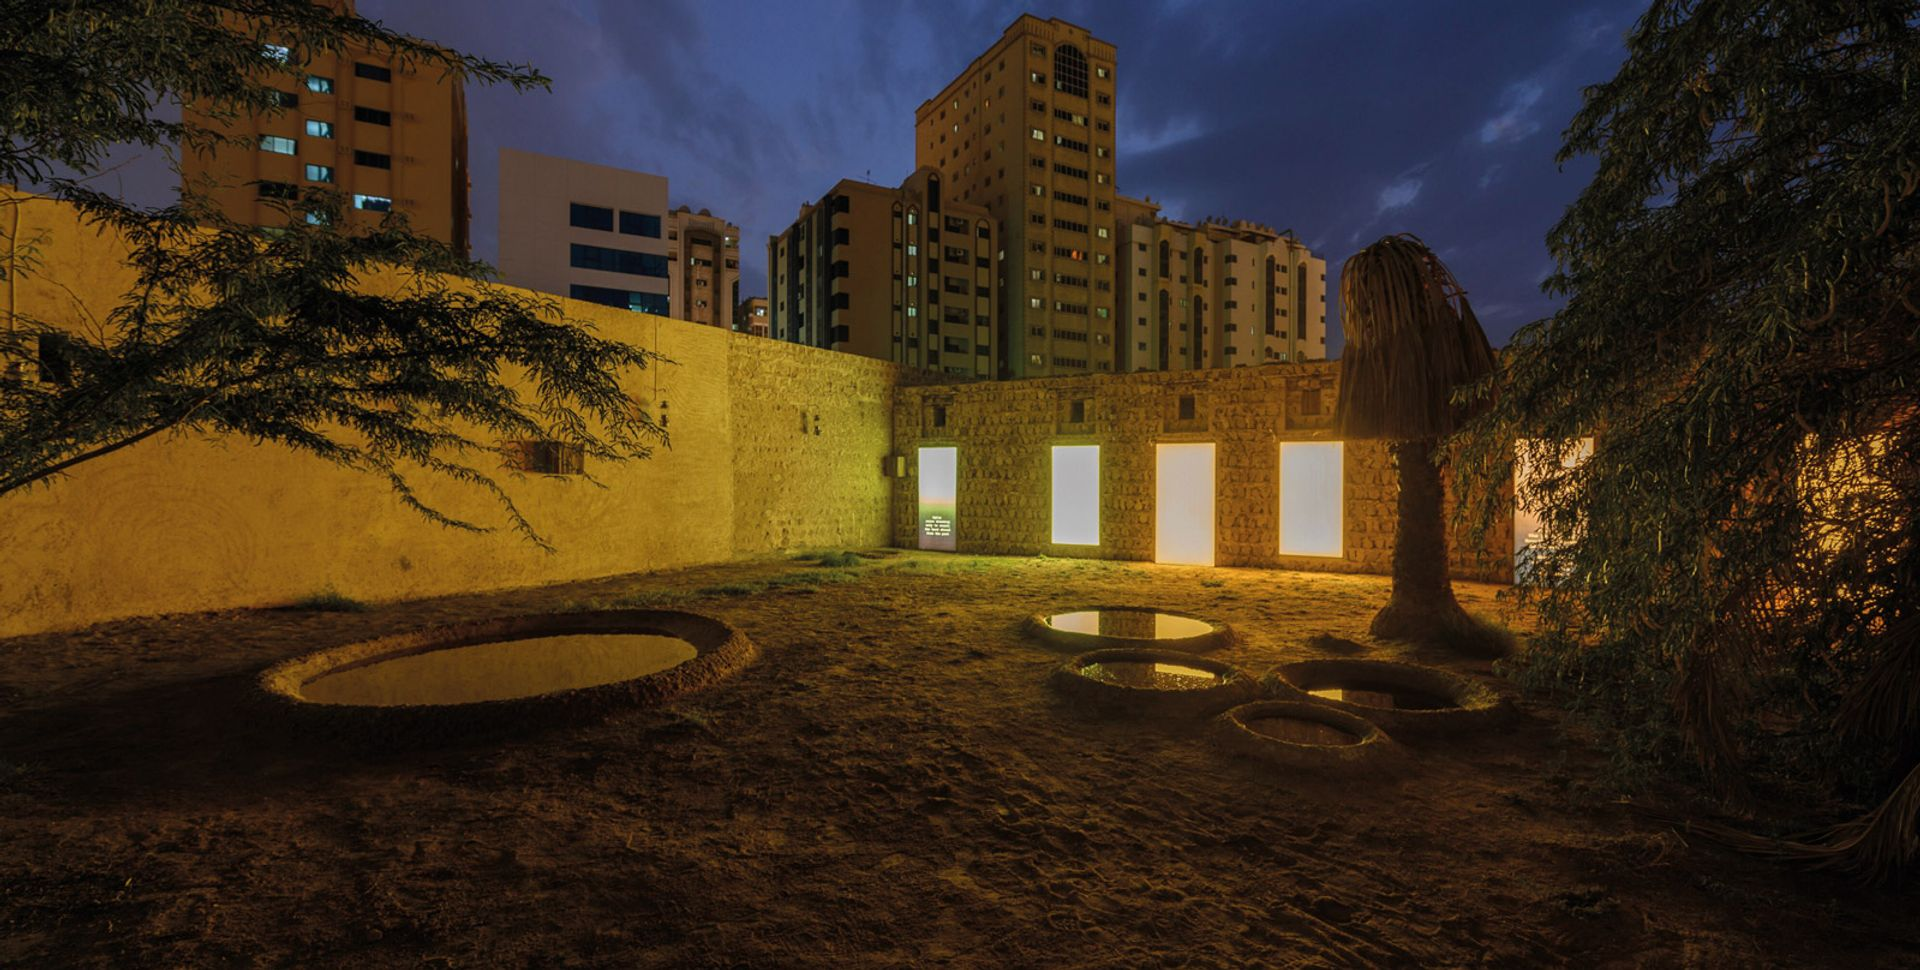 Aging Ruins Dreaming Only to Recall the Hard Chisel from the Past (2019) by Otobong Nkanga and Emeka Ogboh. Courtesy of the artists and Sharjah Art Foundation Aging Ruins Dreaming Only to Recall the Hard Chisel from the Past (2019) by Otobong Nkanga and Emeka Ogboh. Courtesy of the artists and Sharjah Art Foundation